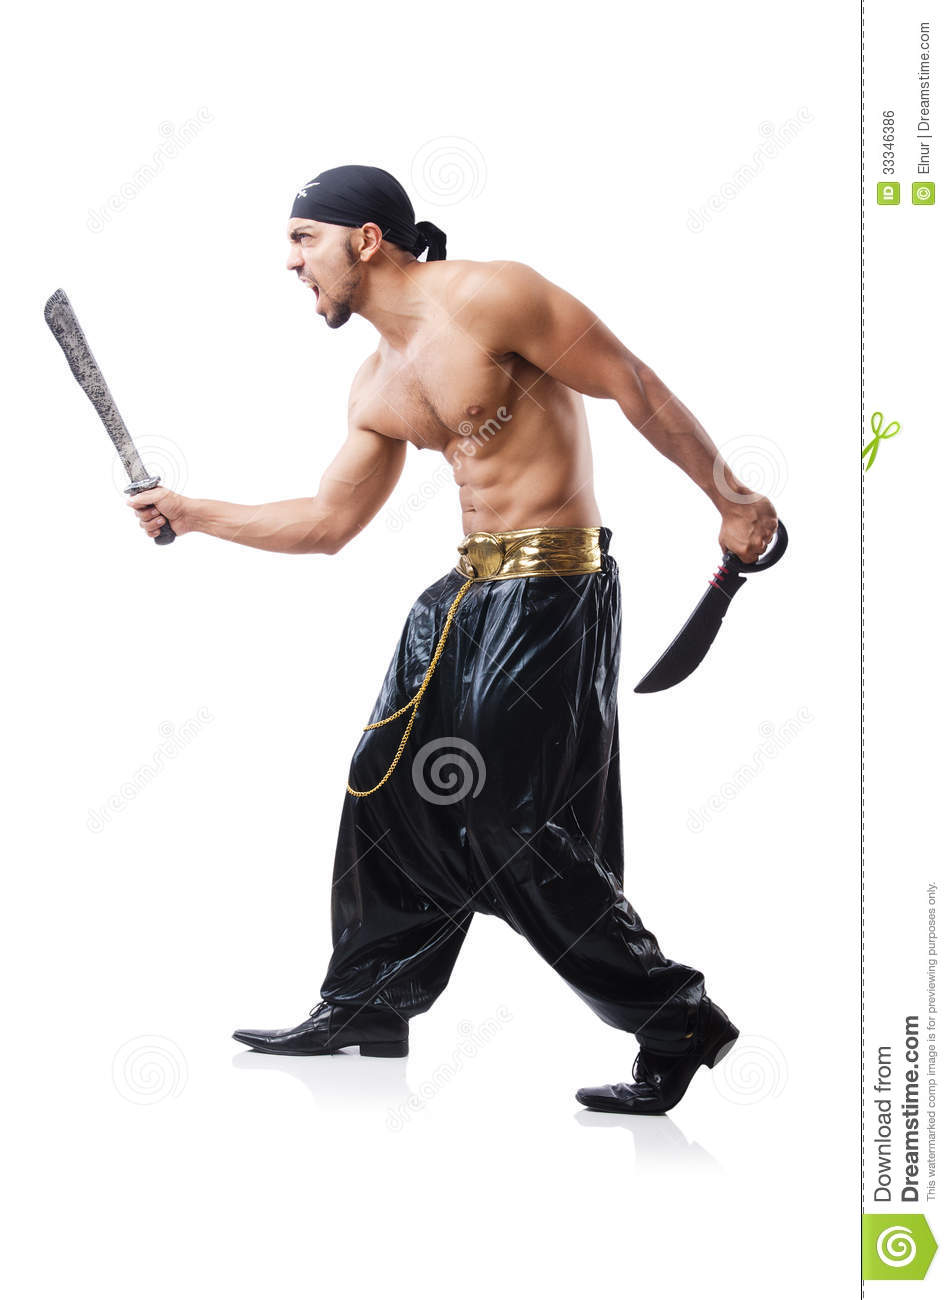 Man In Pirate Costume Royalty Free Stock Image - Image: 33346386